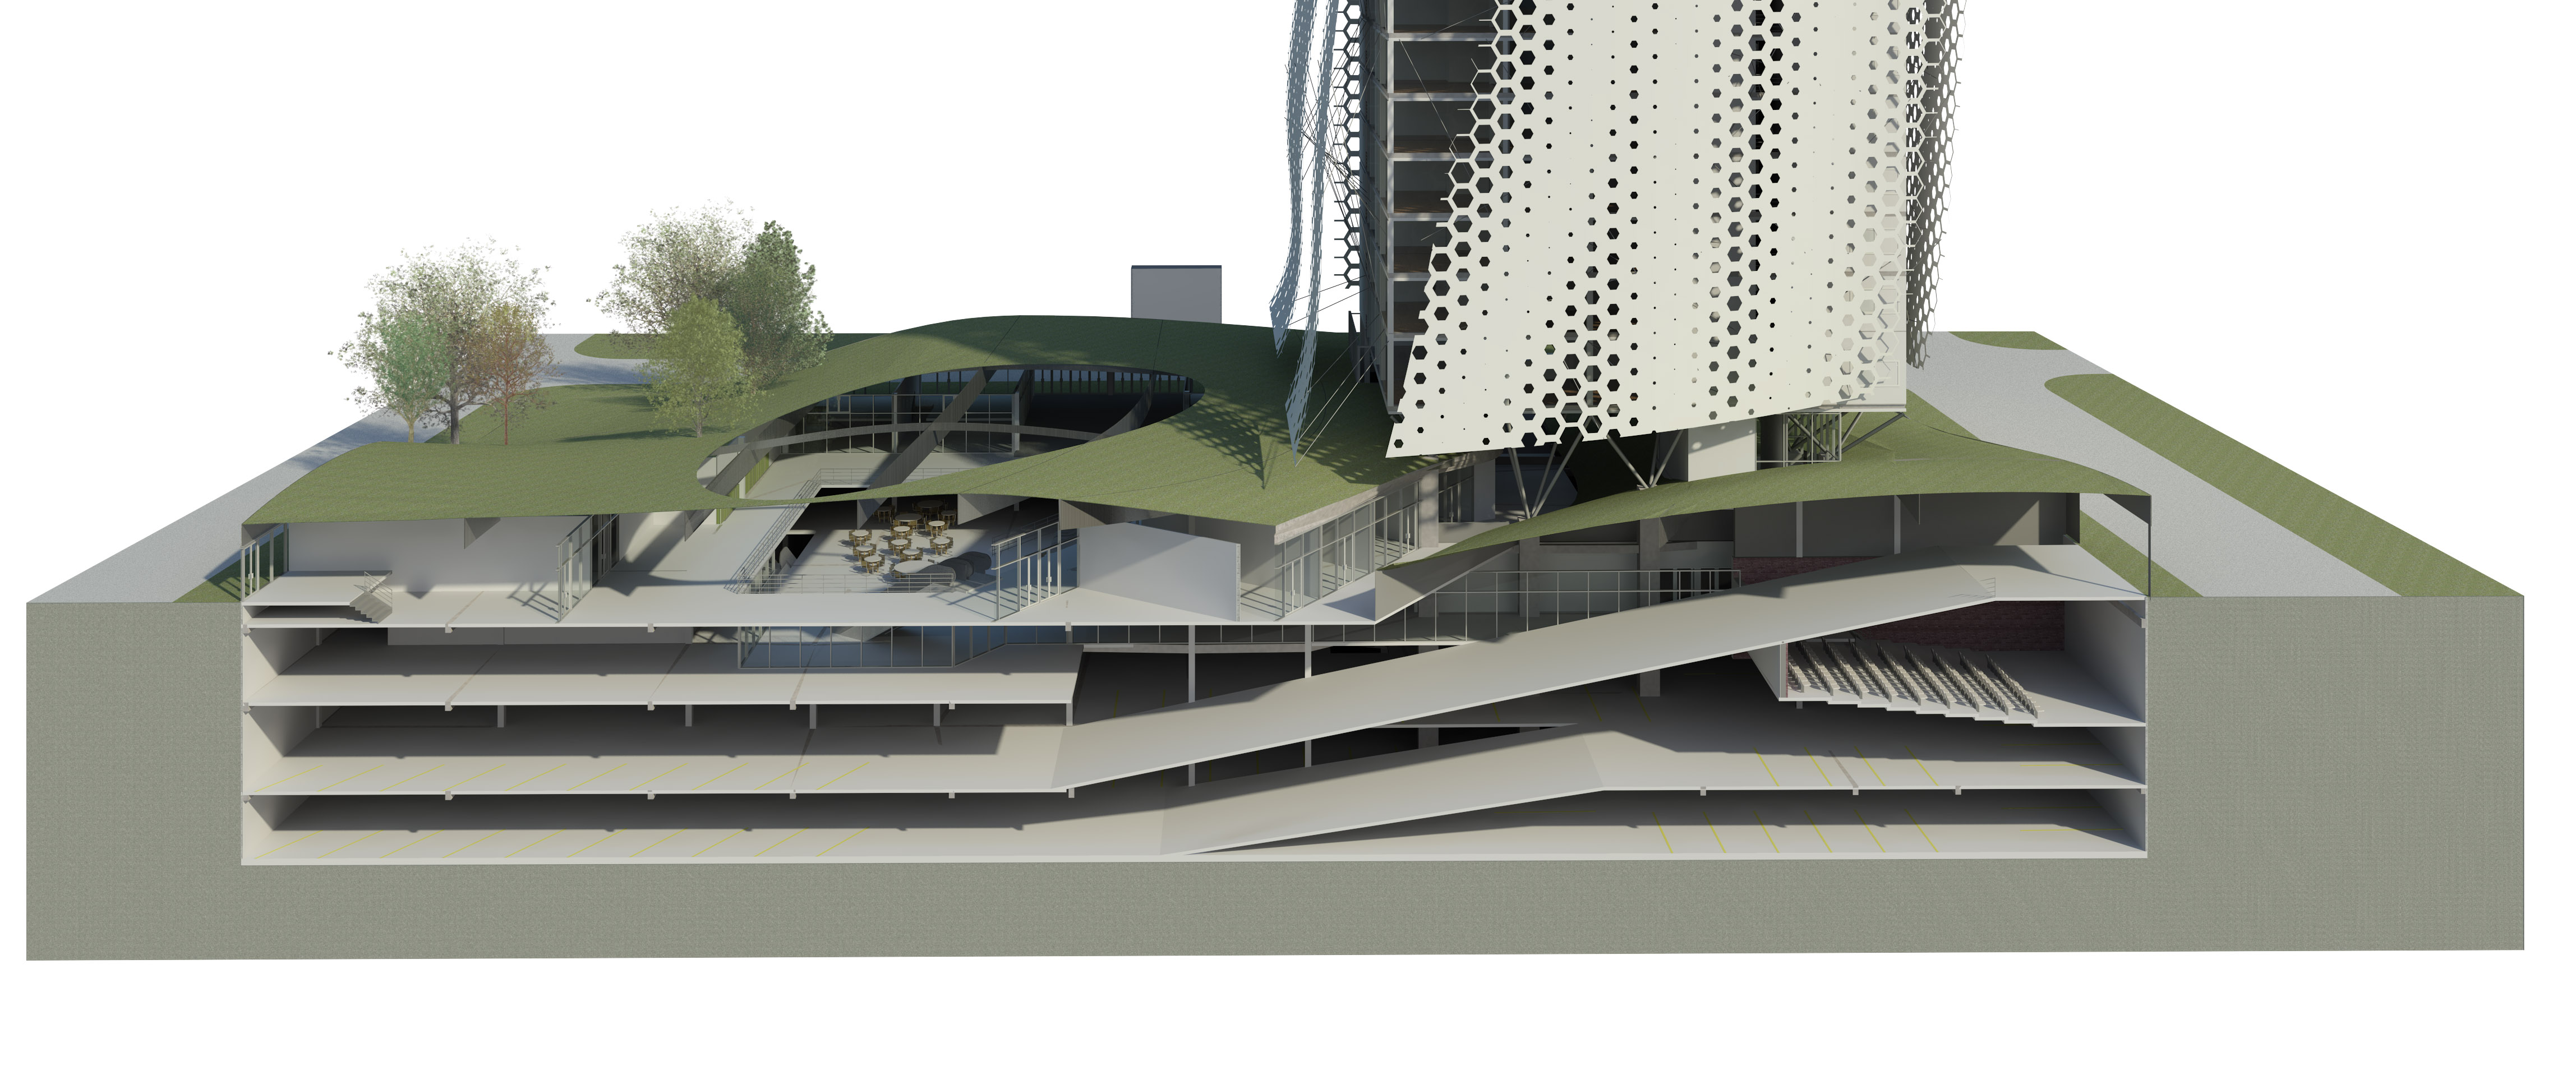 The Canadian War Museum furthermore Default in addition Multifuncional furthermore Trekova Bota together with 5010791928ba0d422200213d Rosa Parks Transit Center Ftl Design Engineering Studio Image. on design for projects